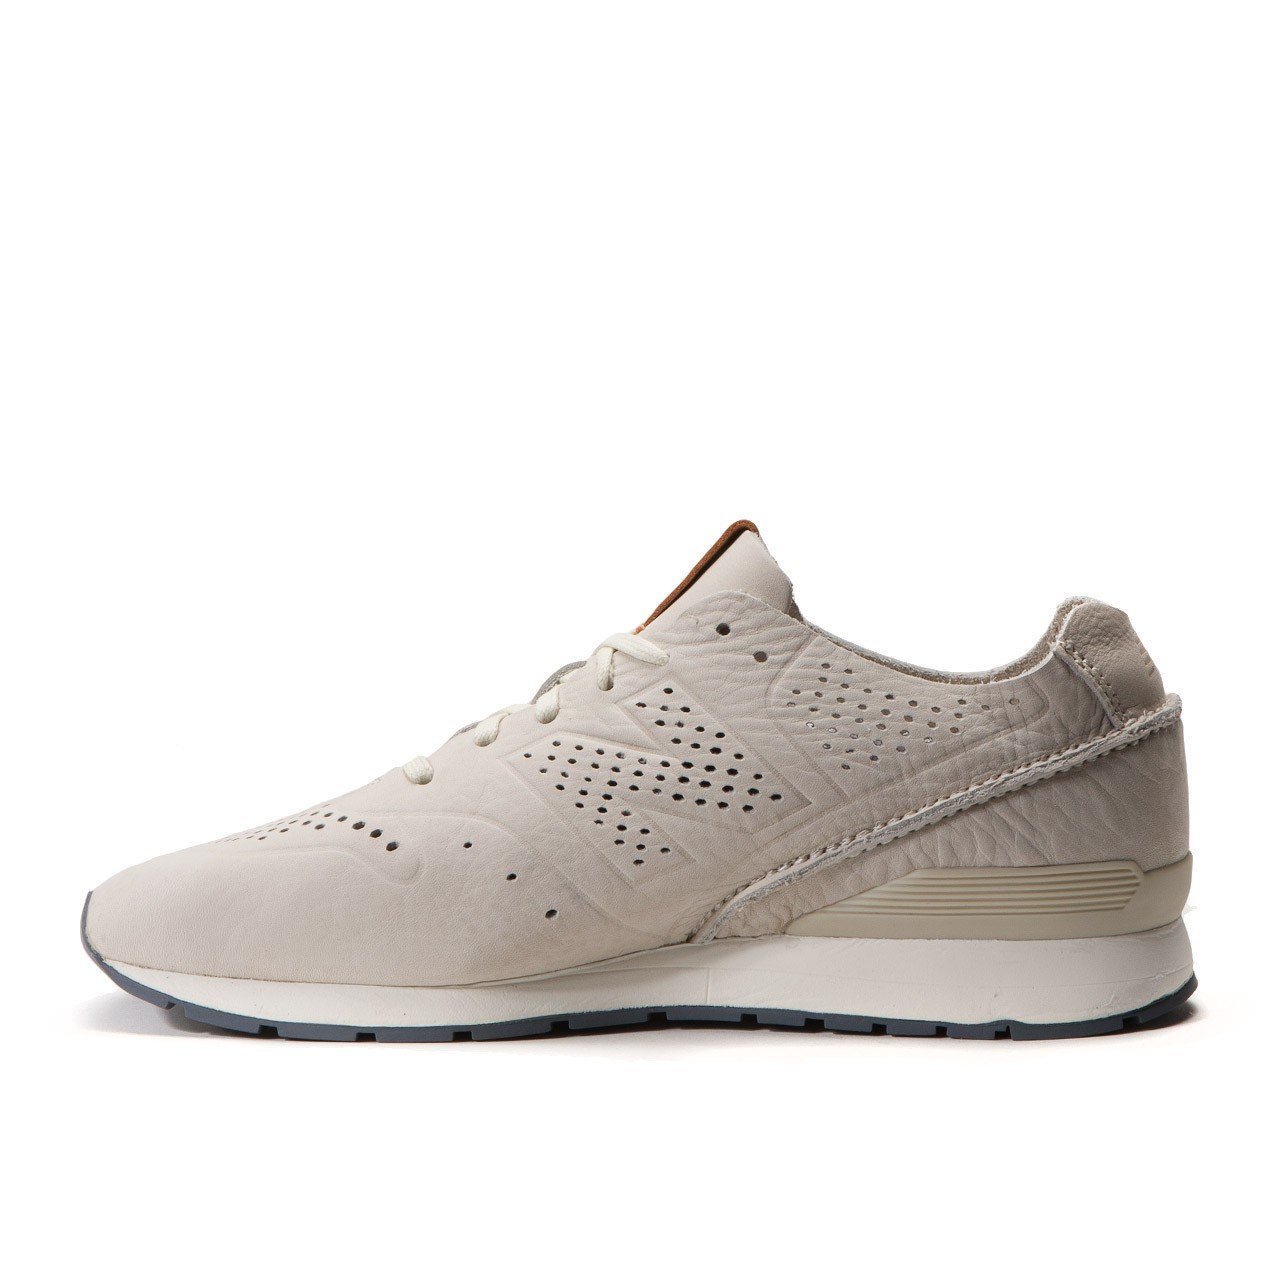 New Balance MRL 996 DW Reengineered